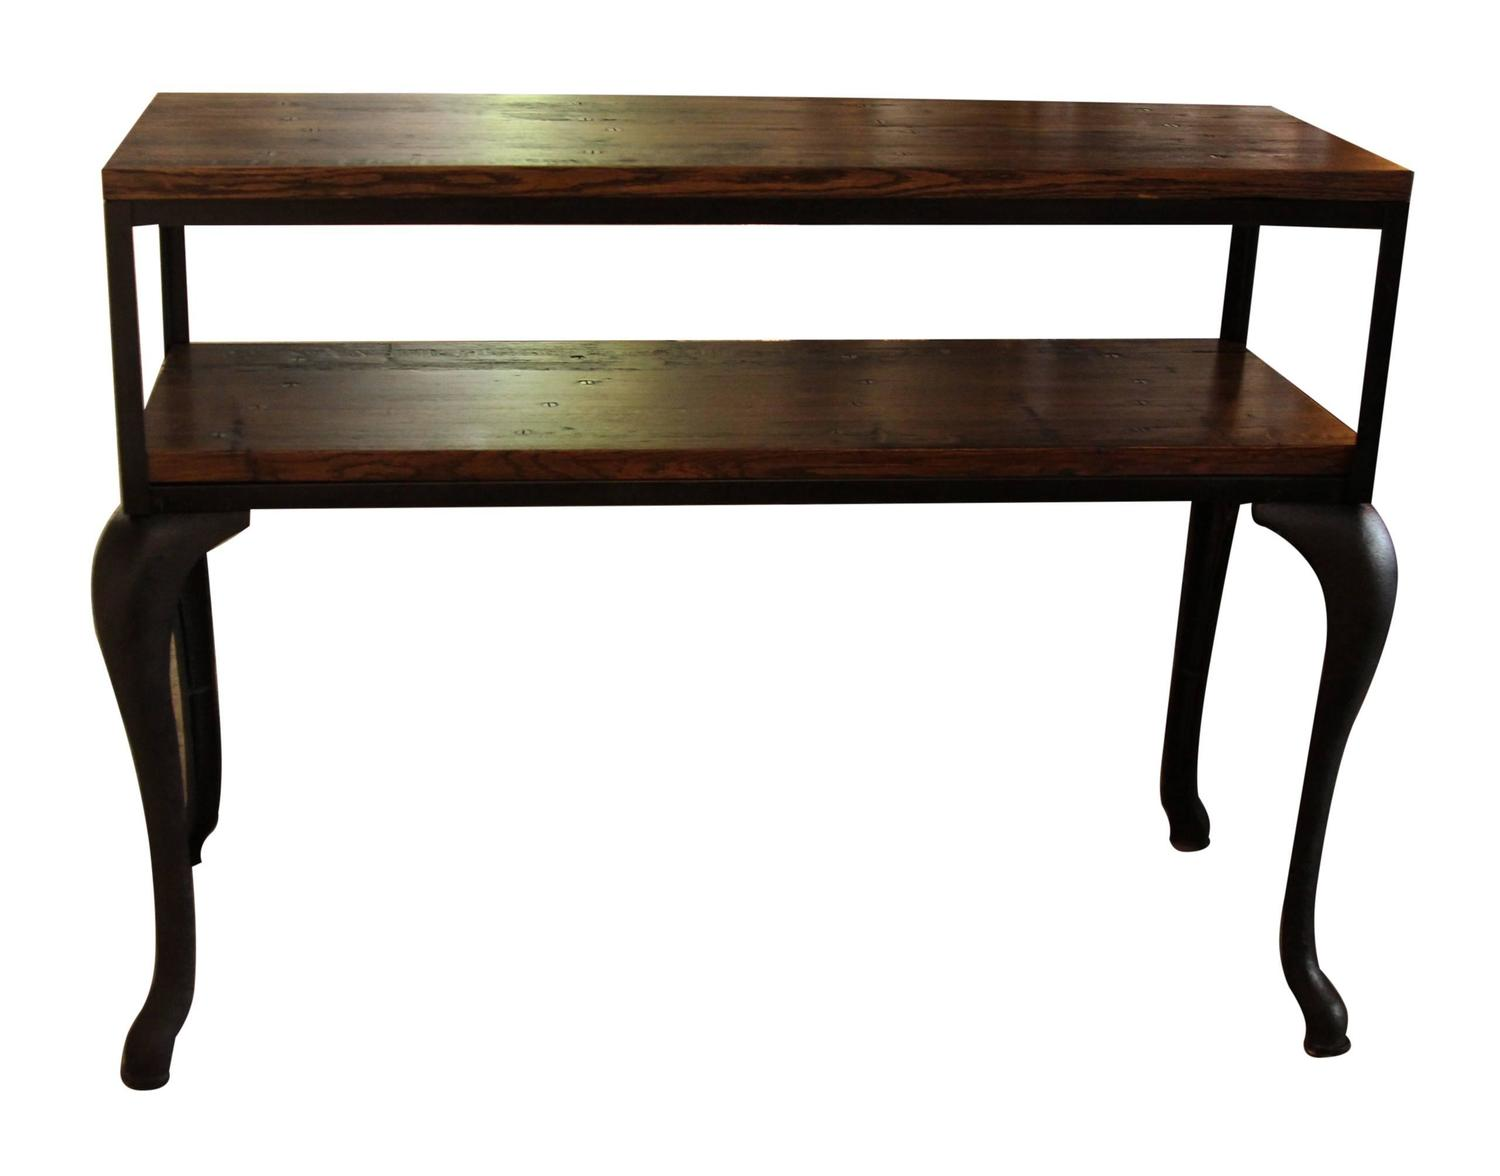 Industrial flooring top console table with cast iron for Cast iron furniture legs for sale